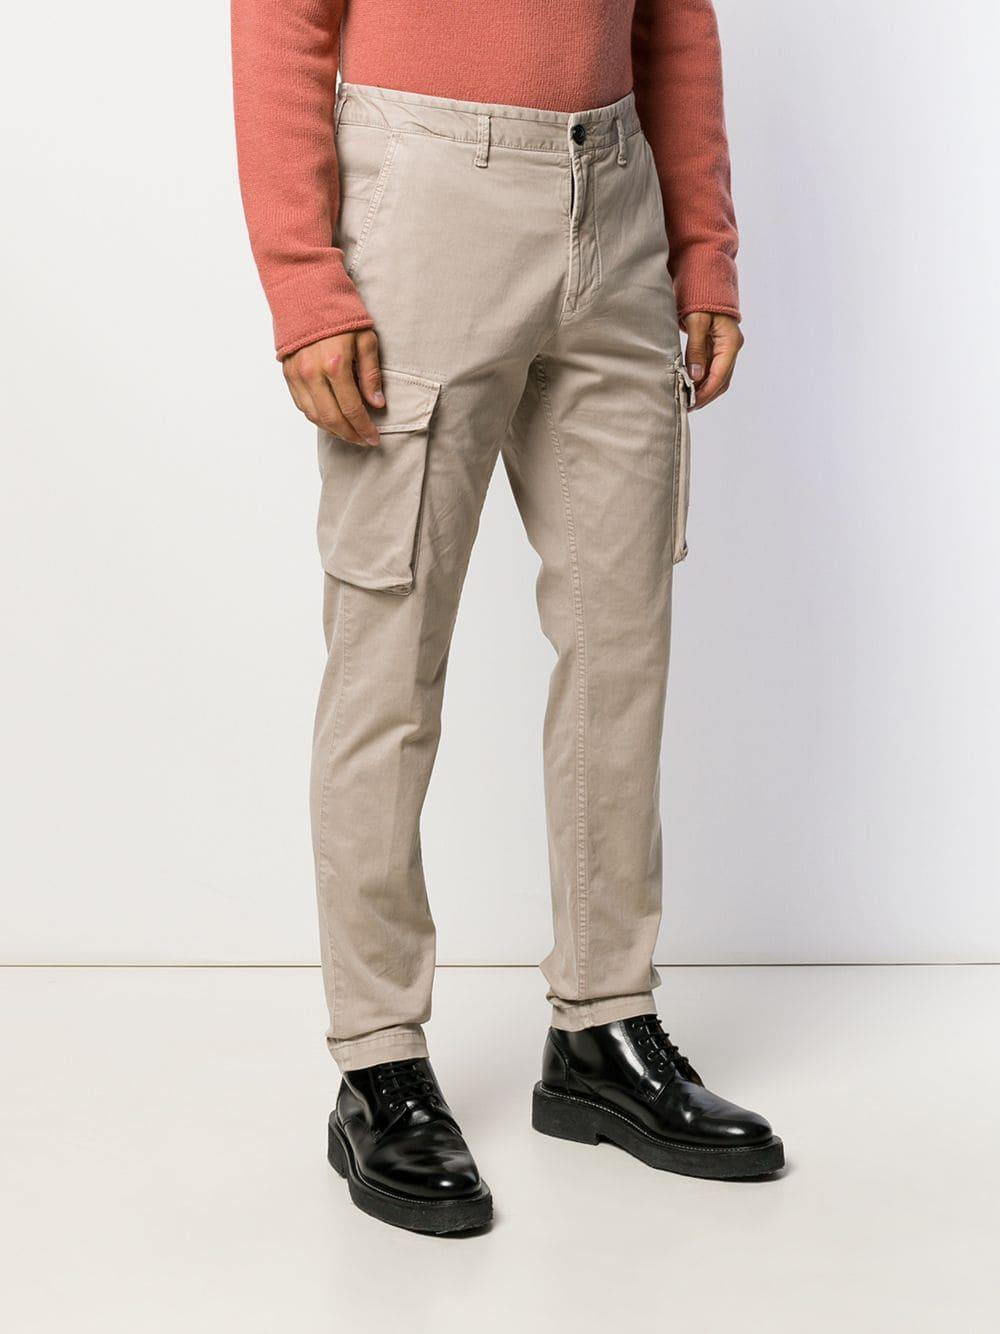 Stone Island Cotton Cargo Trousers in Natural for Men - Lyst